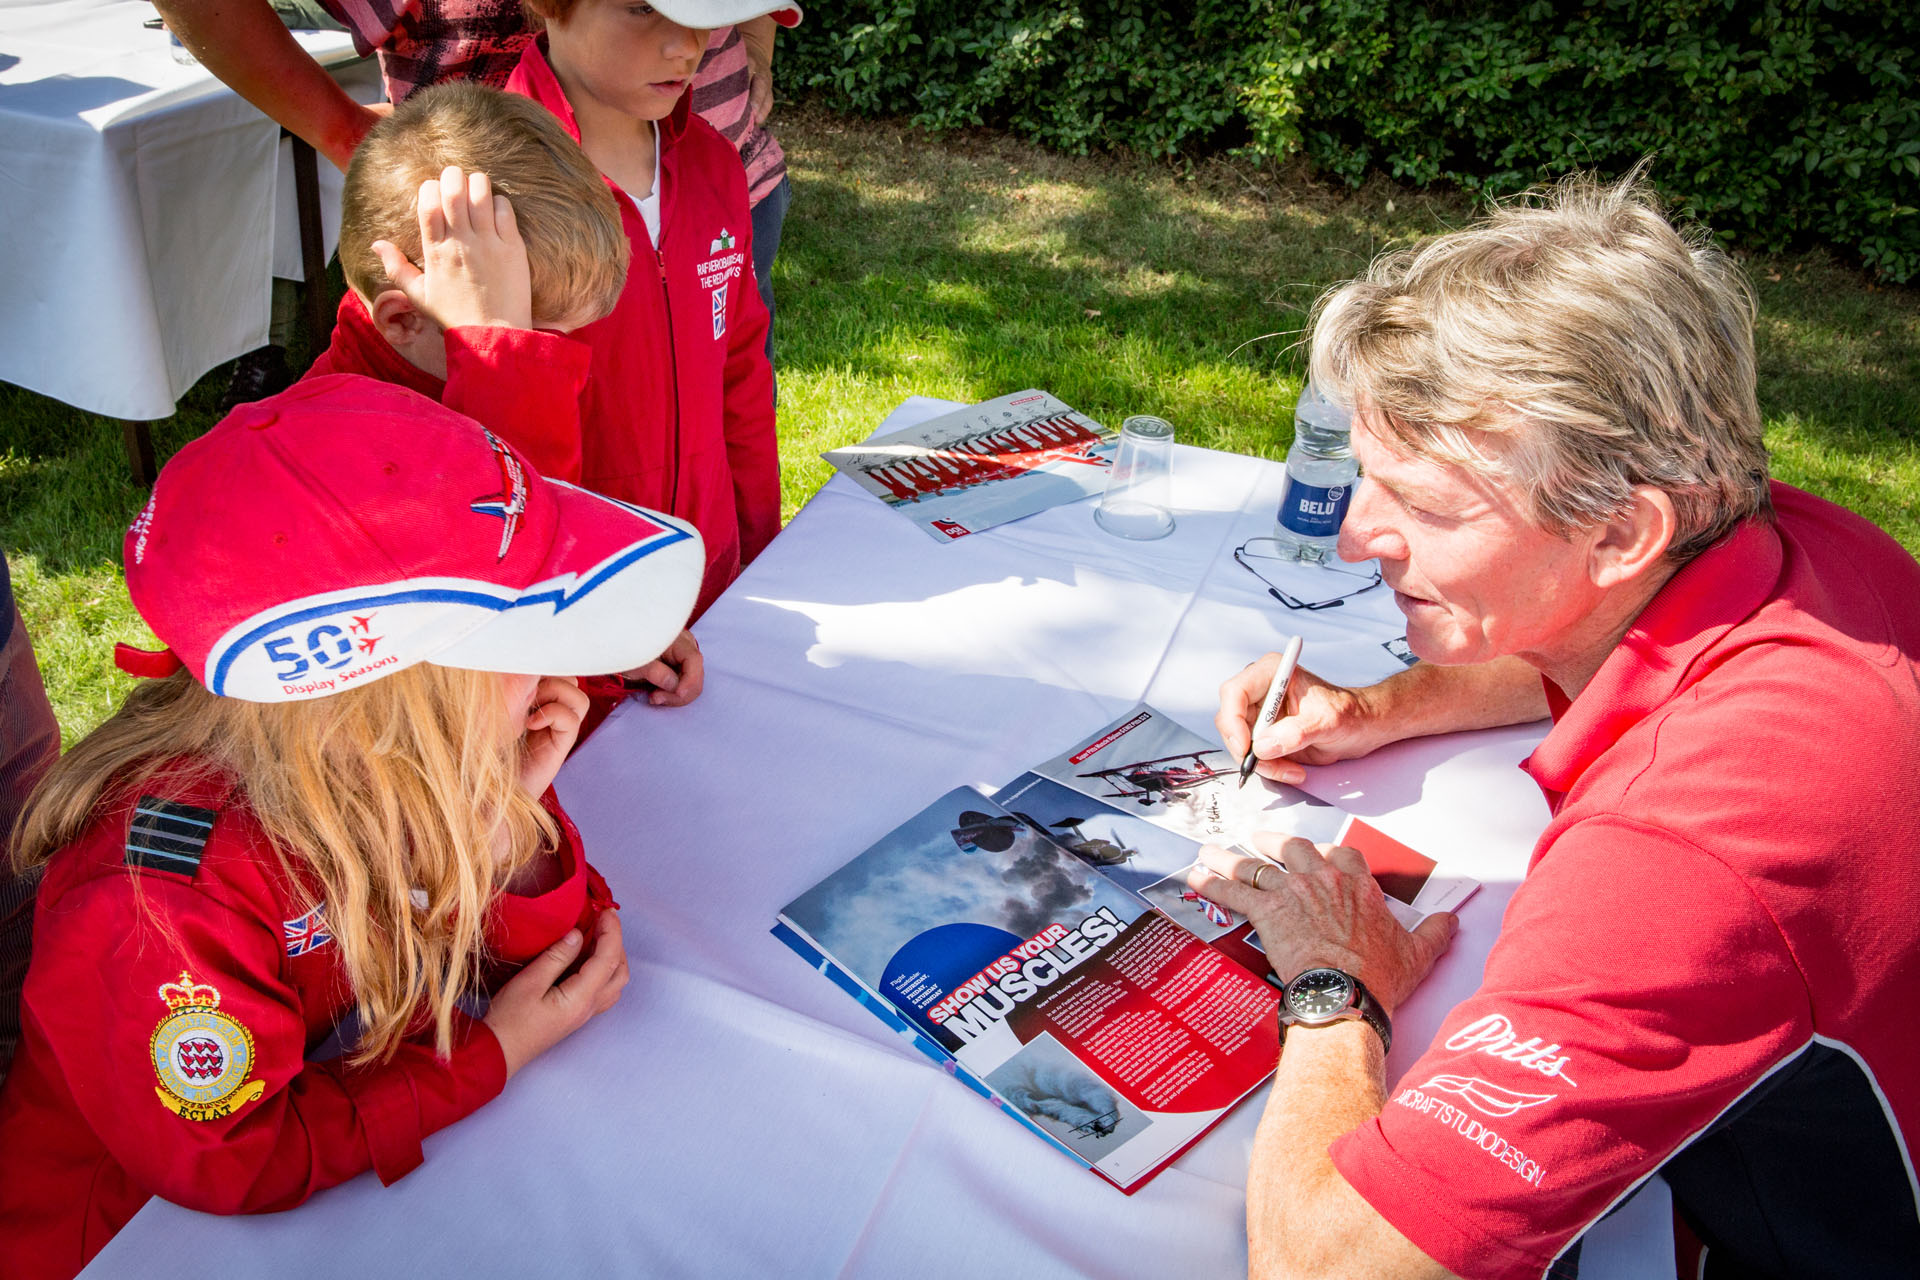 Children getting their brochure signed by a Pilot at the Air Show